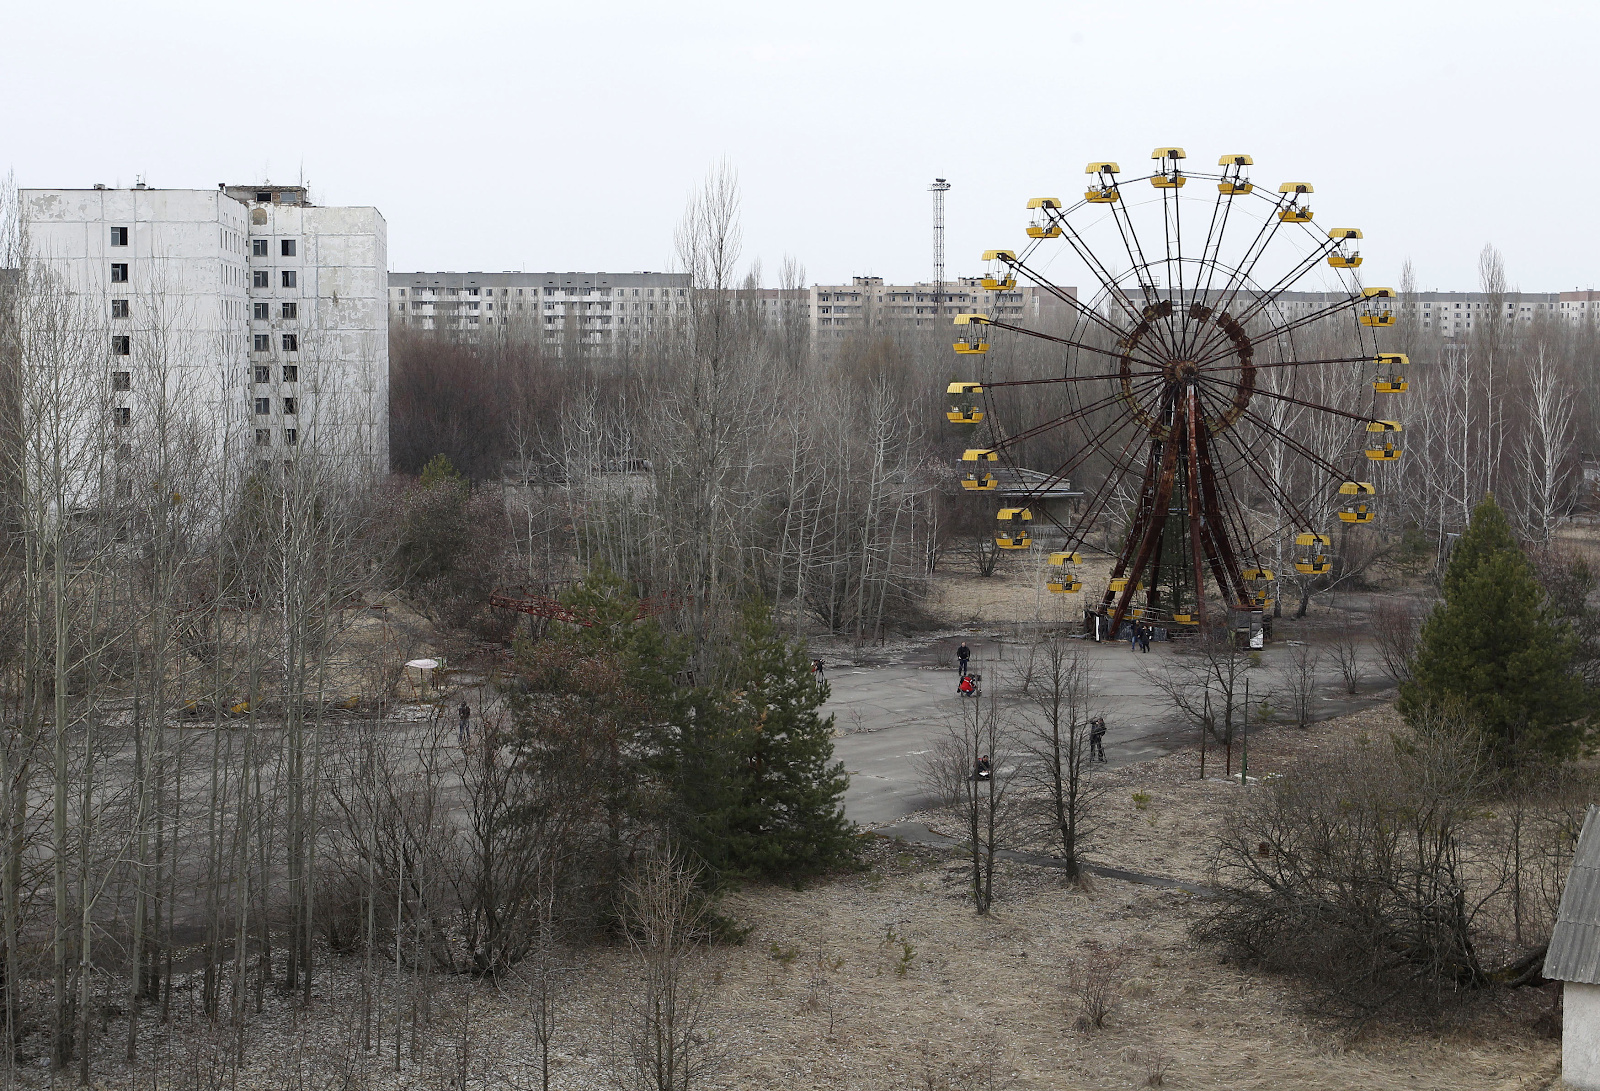 What's going on in Chernobyl today? | World Economic Forum